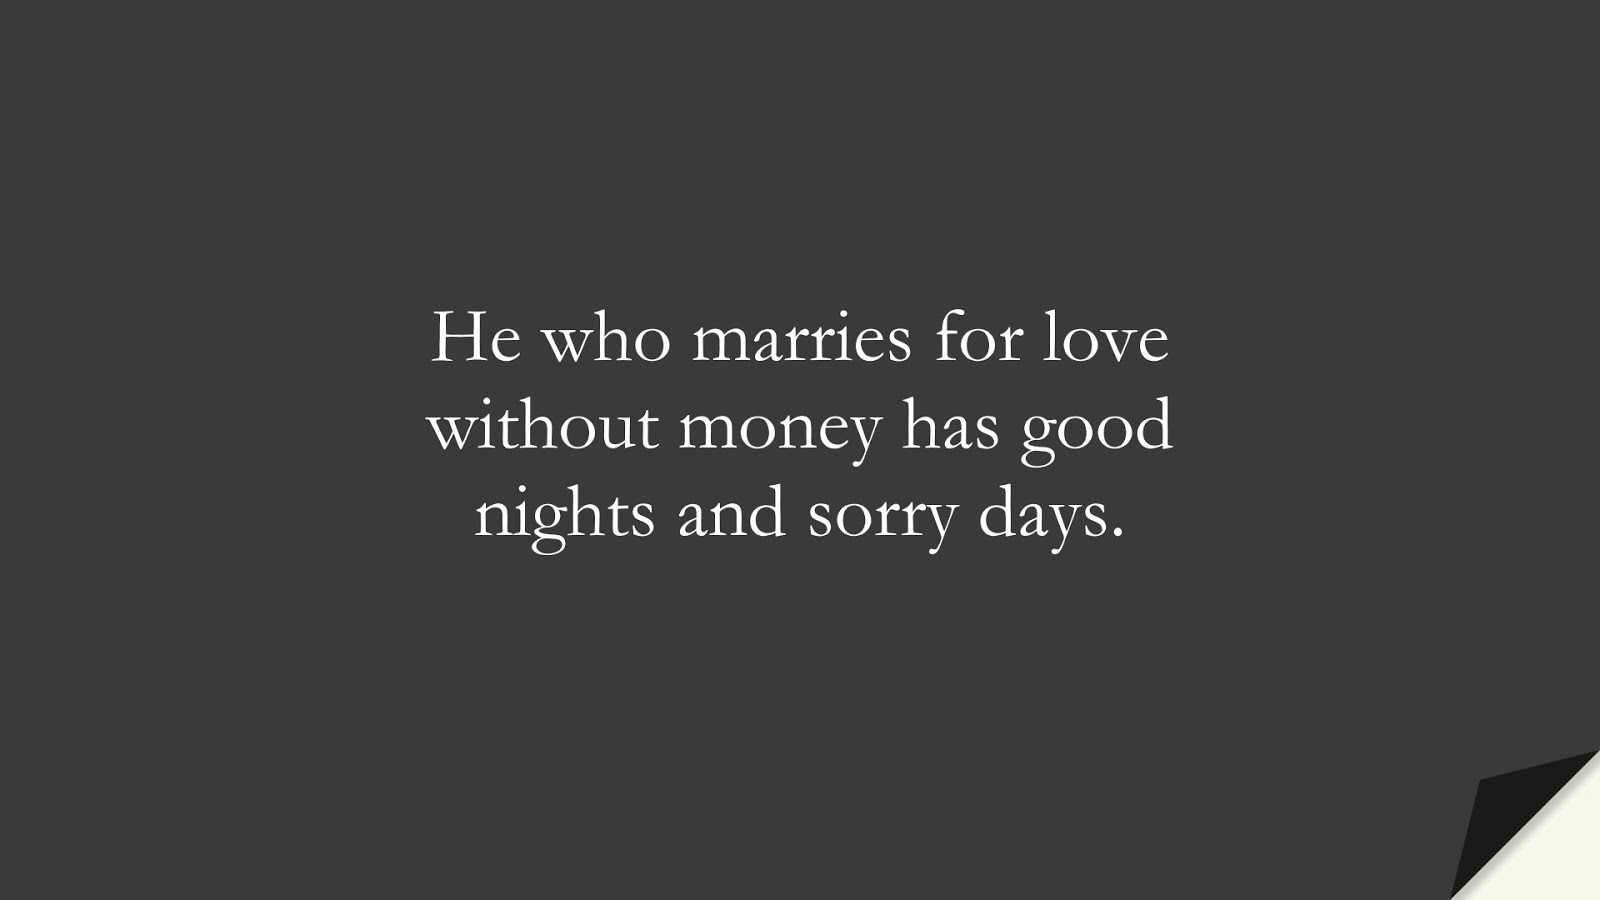 He who marries for love without money has good nights and sorry days.FALSE